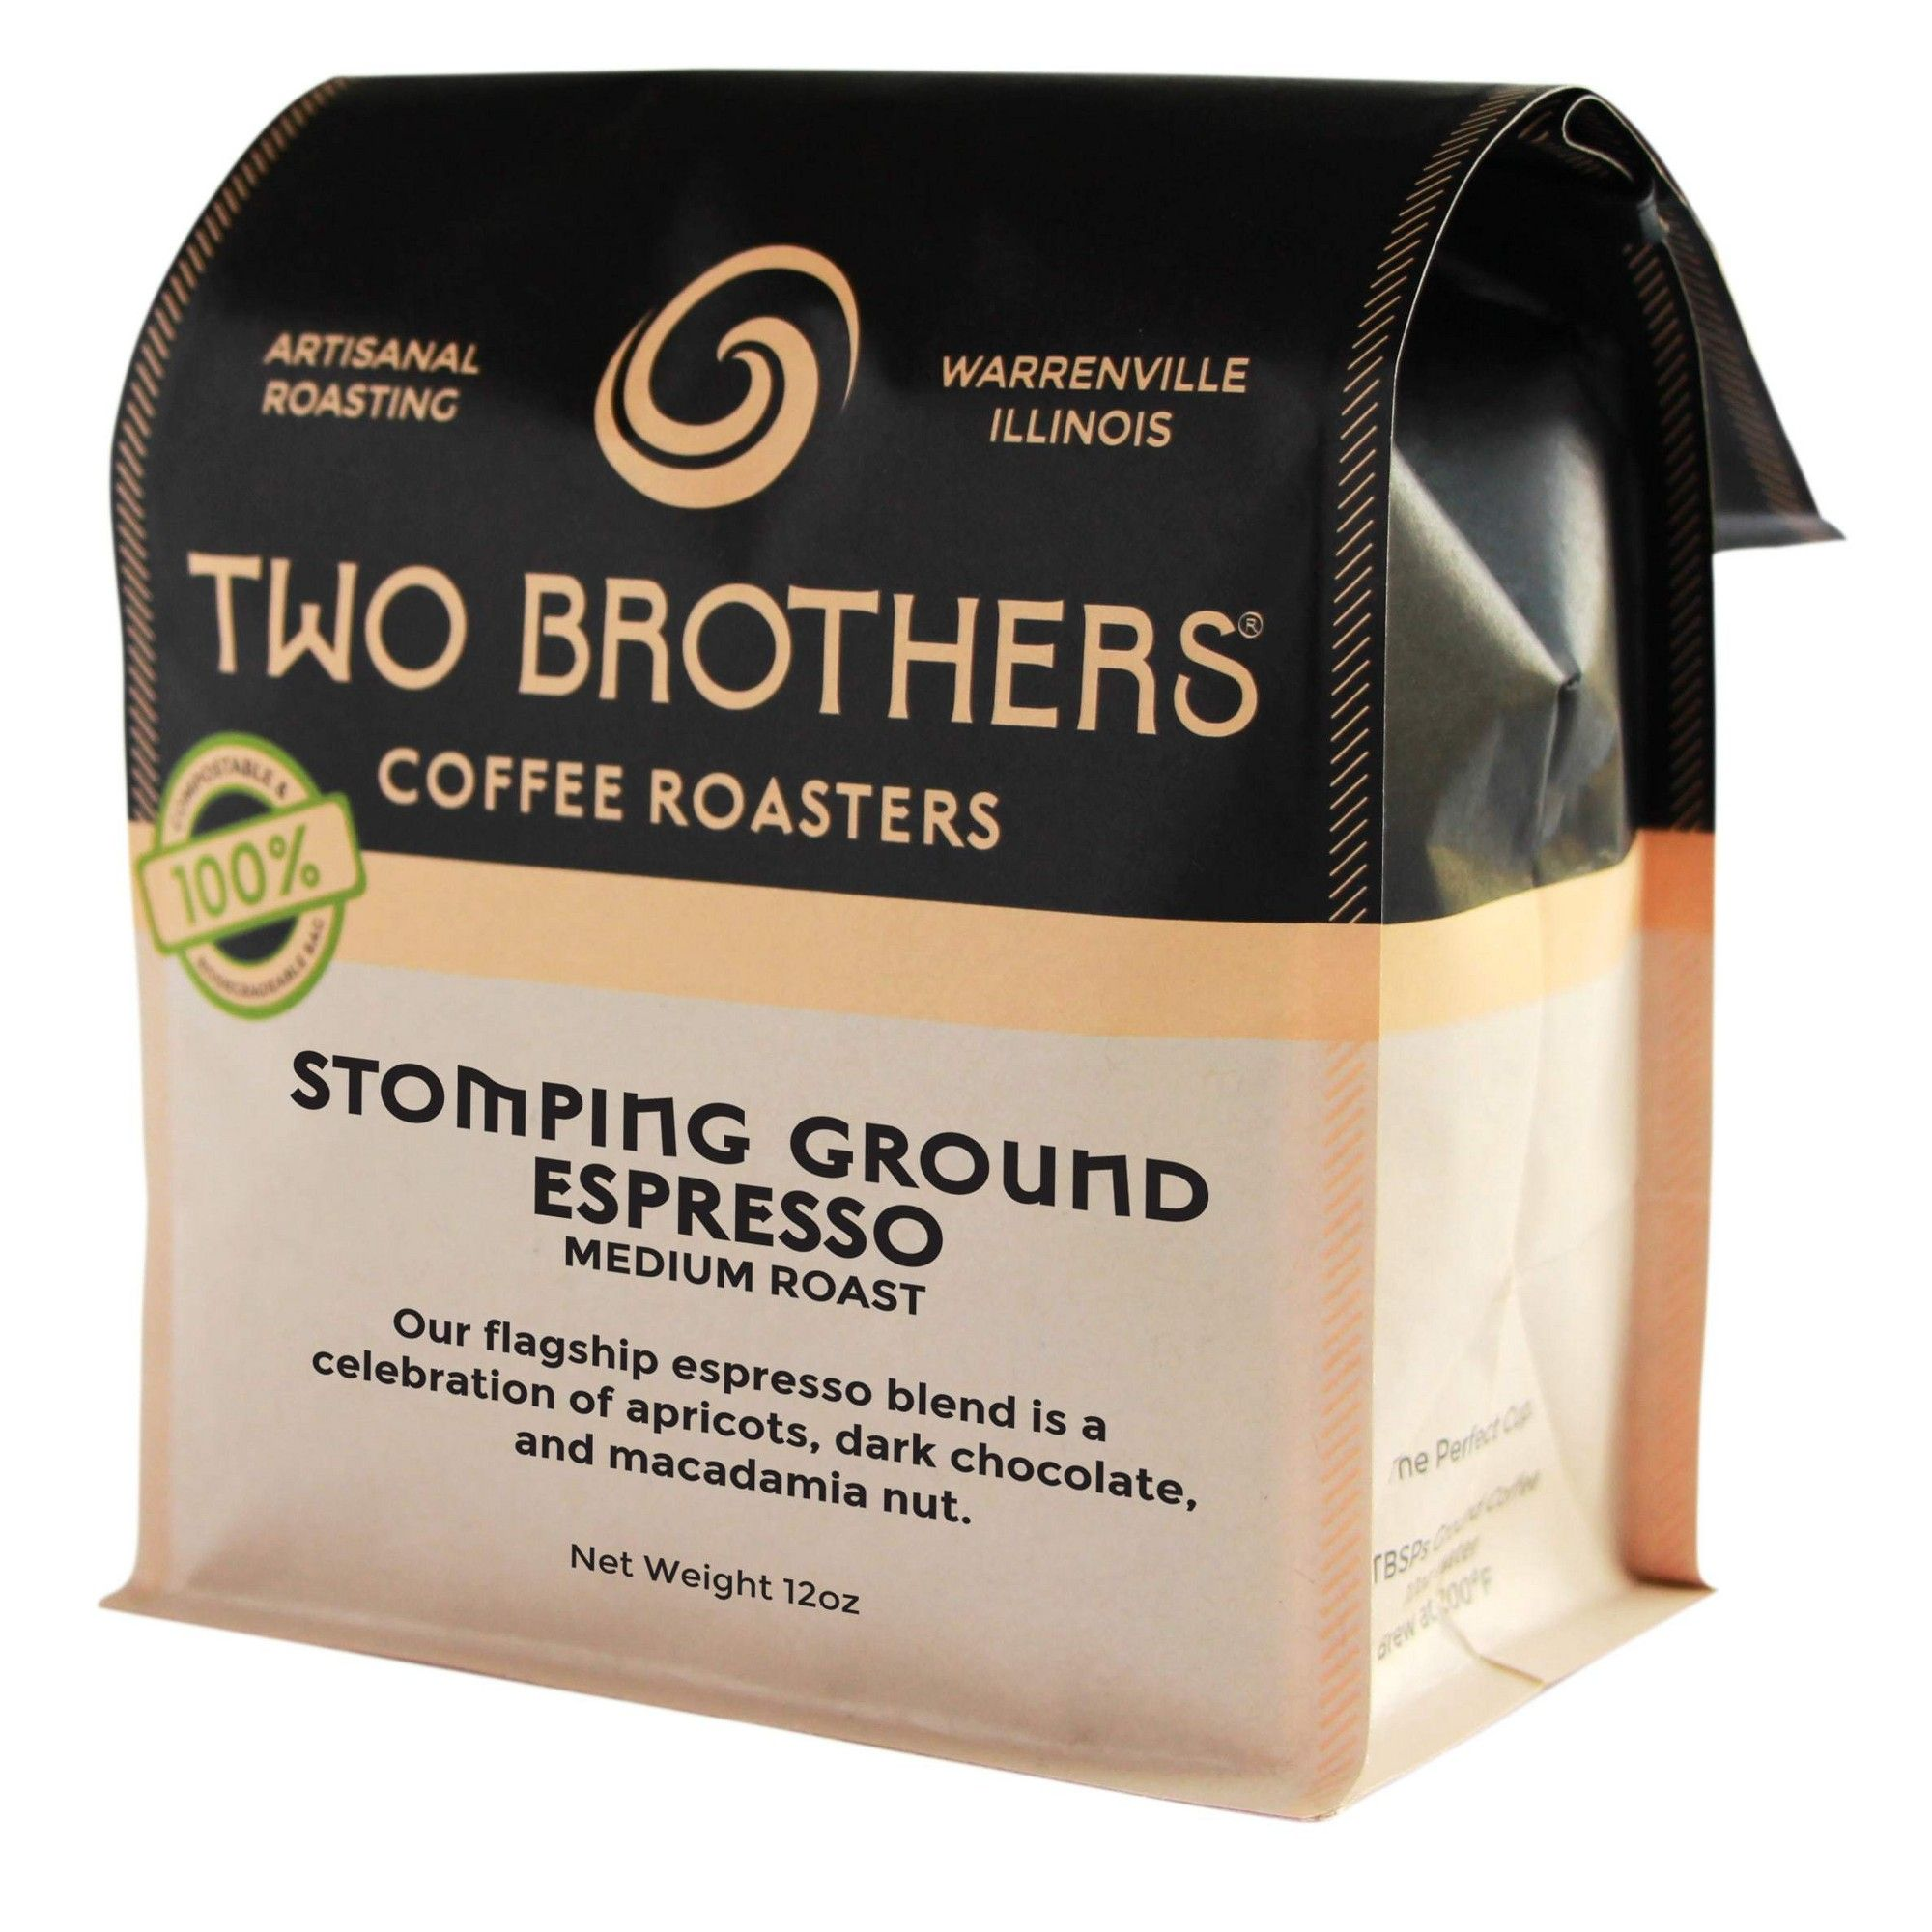 Two Brothers Stomping Ground Espresso Whole Bean Medium Roast Coffee 12oz Medium Roast Coffee Ground Espresso Coffee Roasting